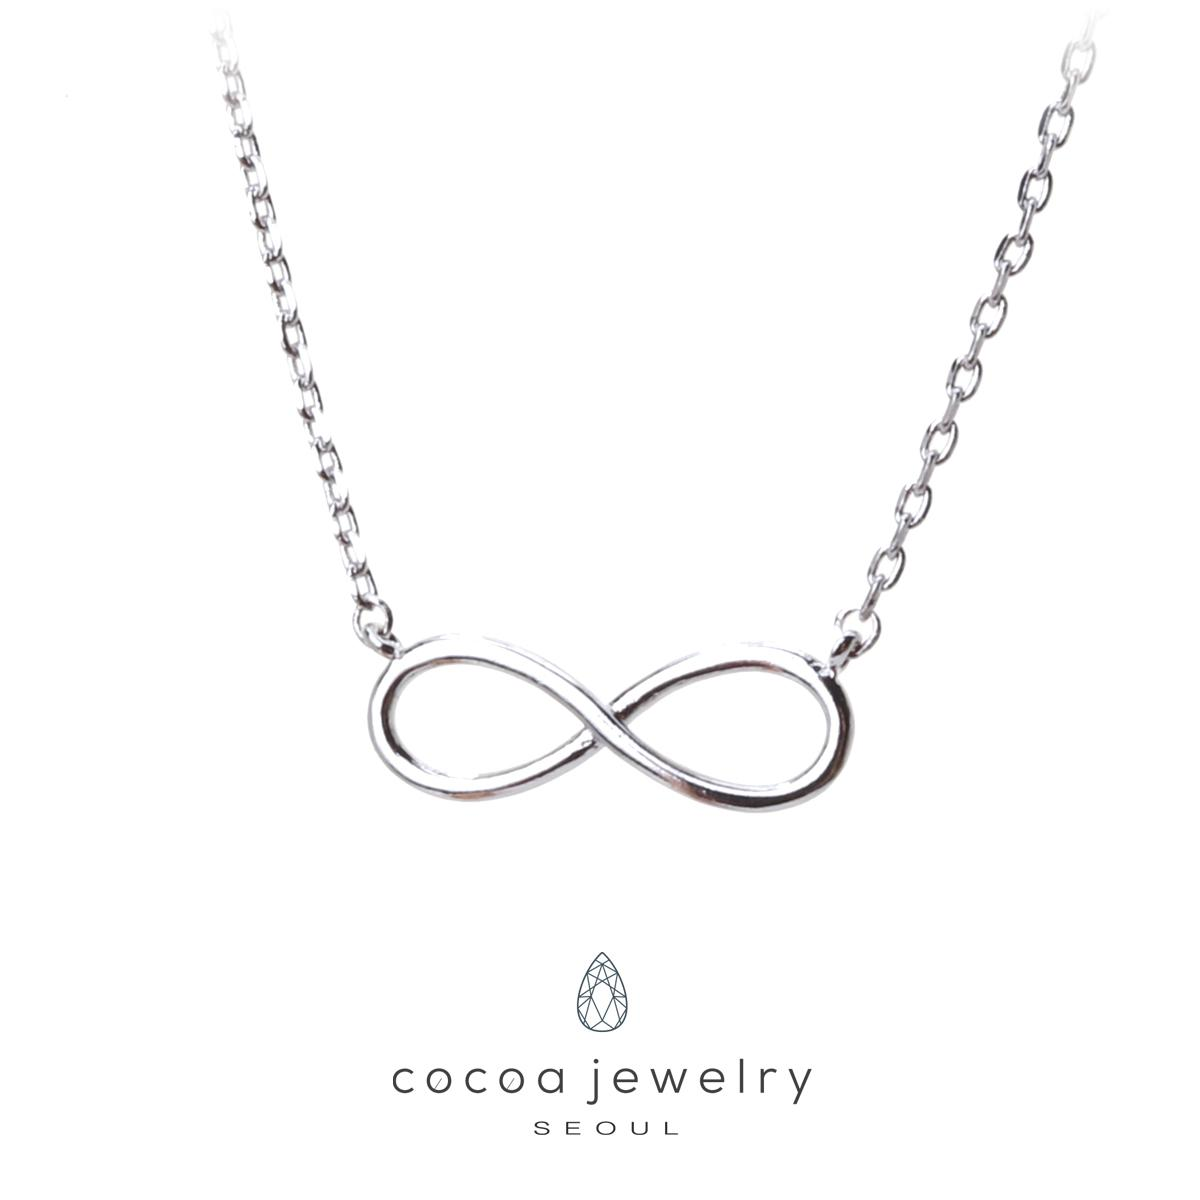 Korea Cocoa Jewelry Necklace Infinity - Kalung Silver Color